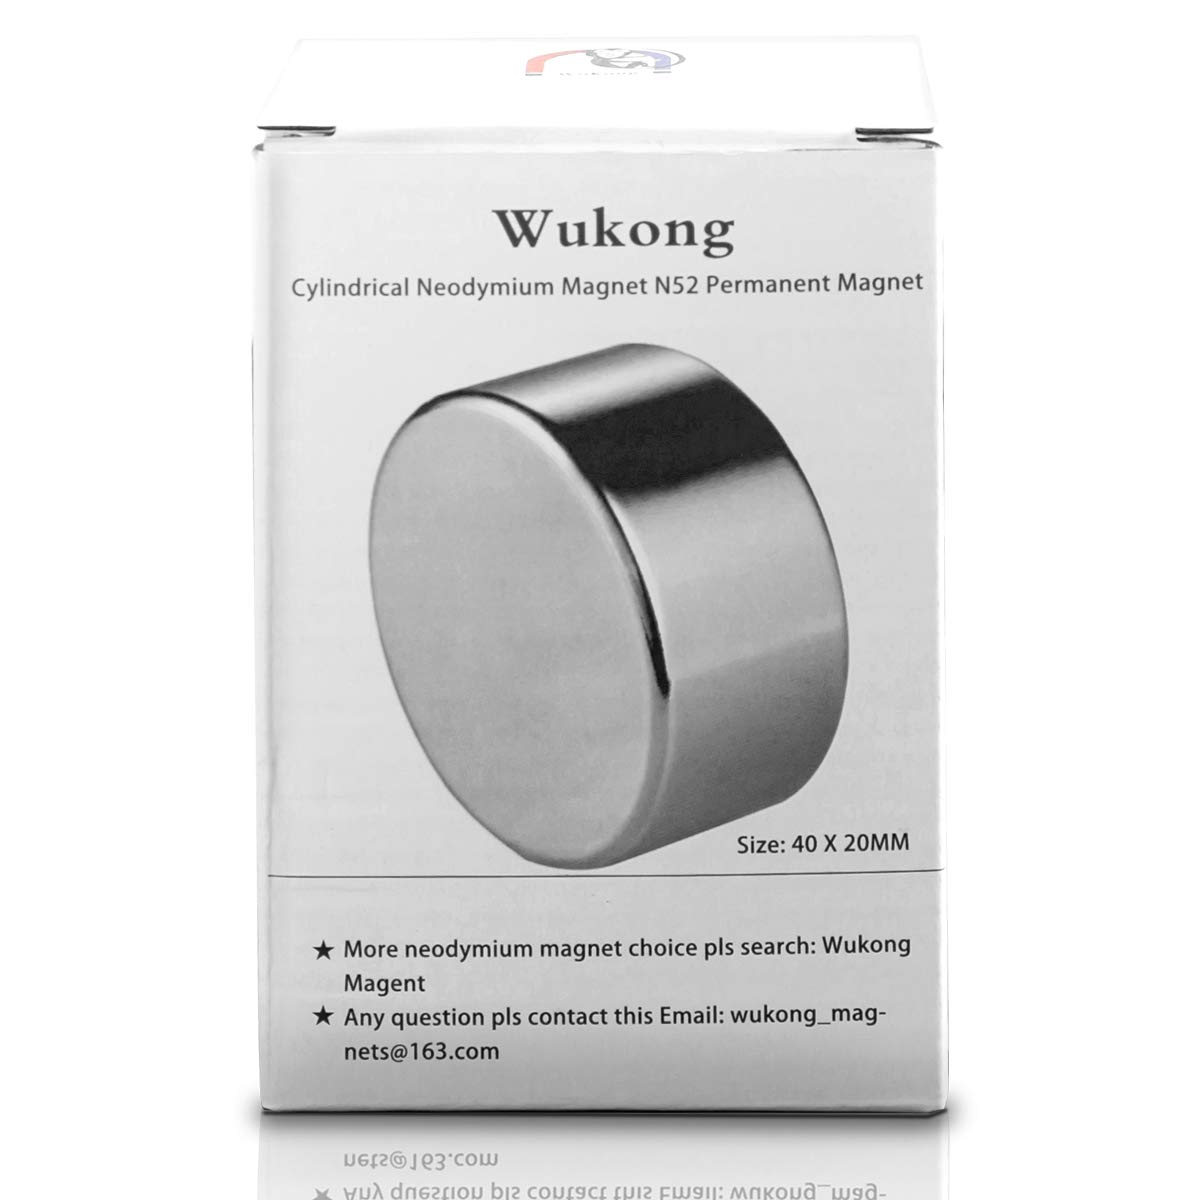 and Office Magnets Wukong N52 Permanent Magnet Disc Powerful Cylindrical Neodymium Rare Earth Magnets 40x20MM Craft DIY Scientific